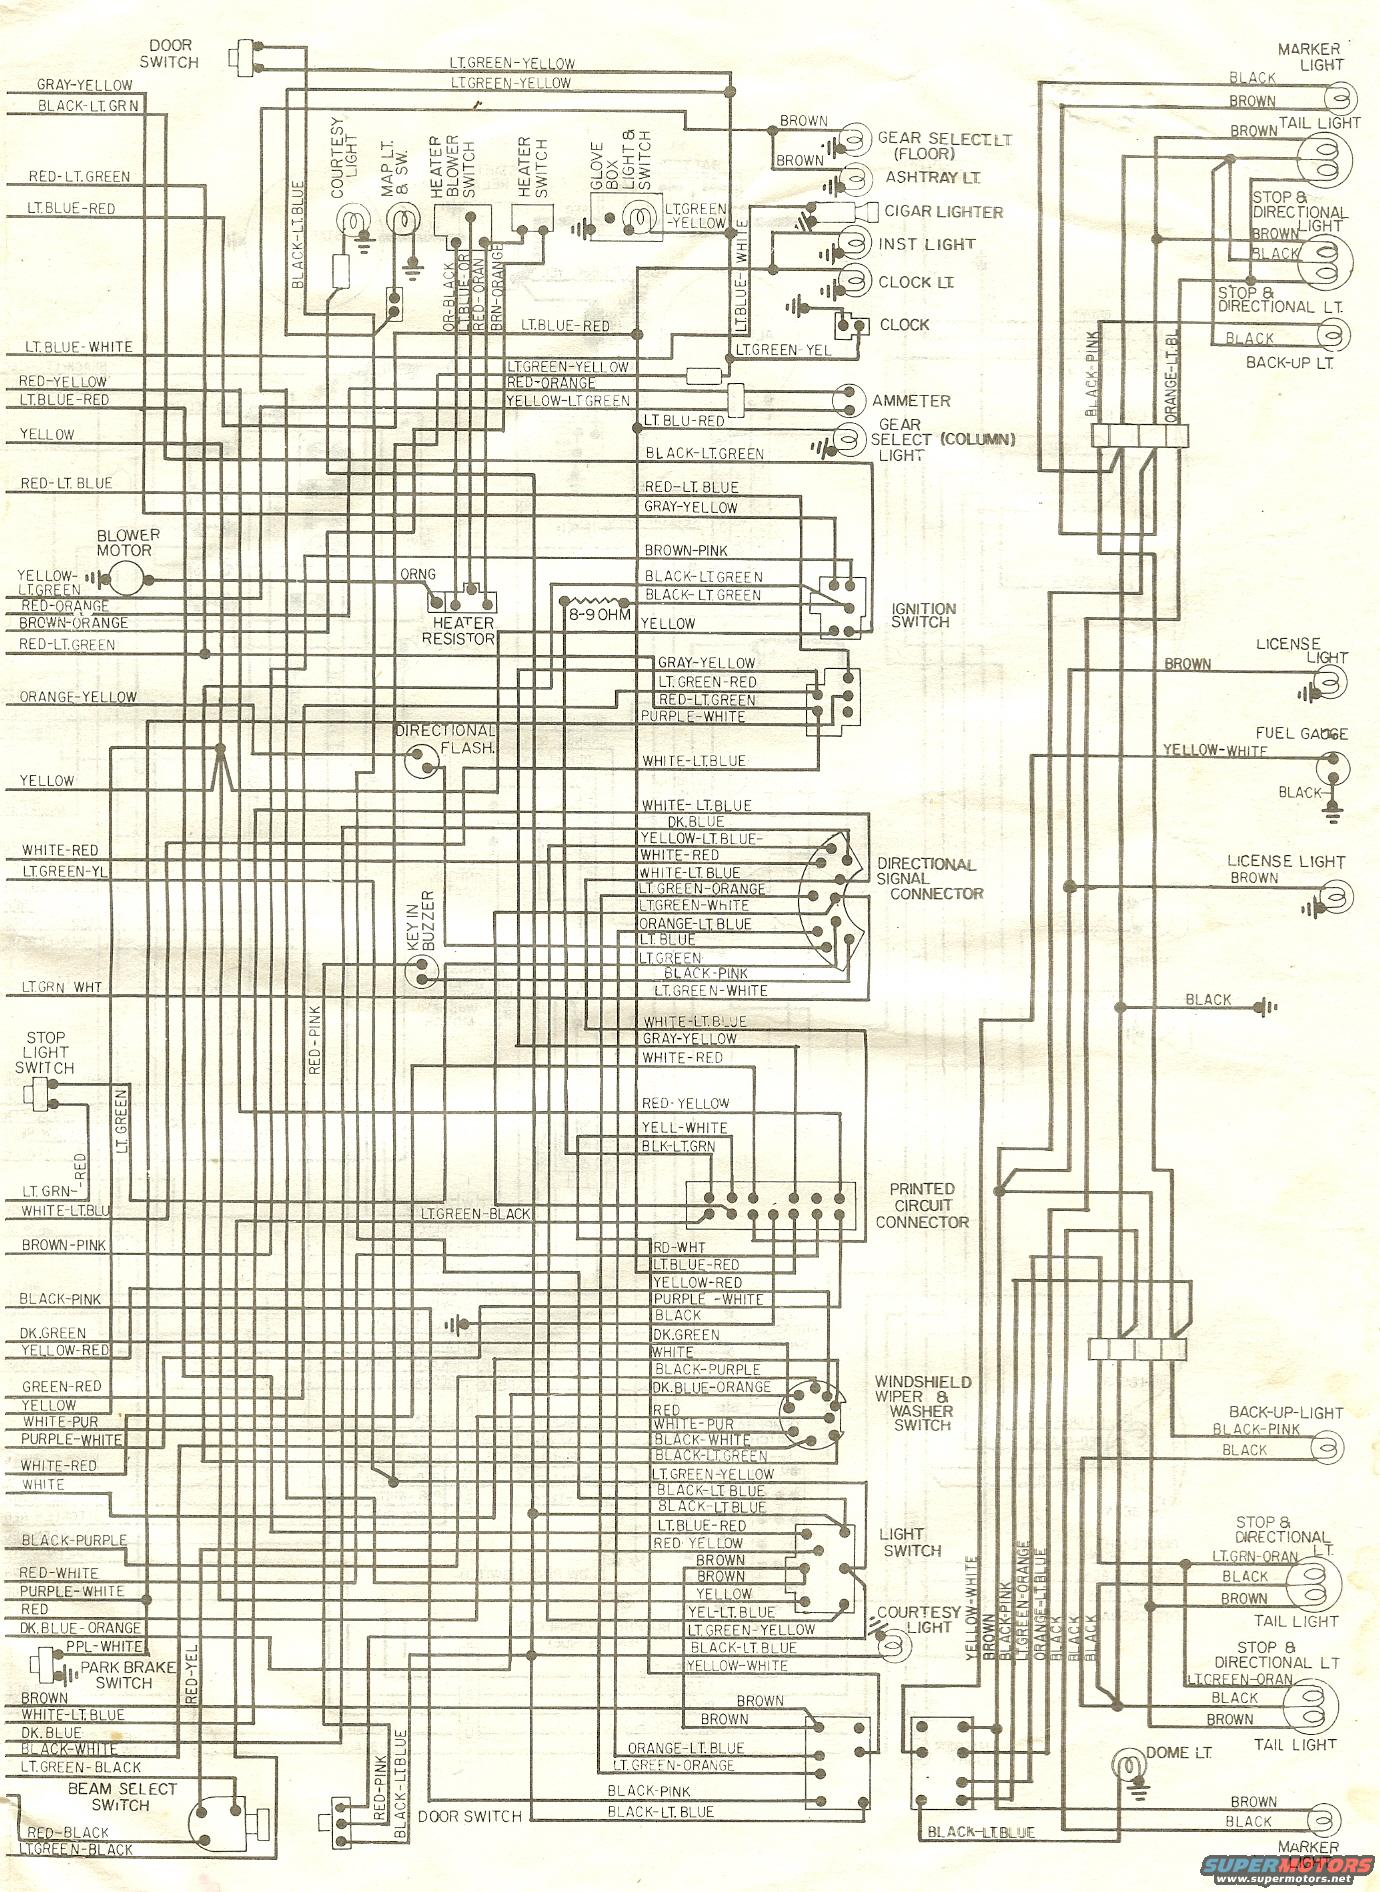 1978 Mgb Wiper Wiring Diagram Auto Electrical Goodall Diagrams 1979 Roadster Free Engine Image